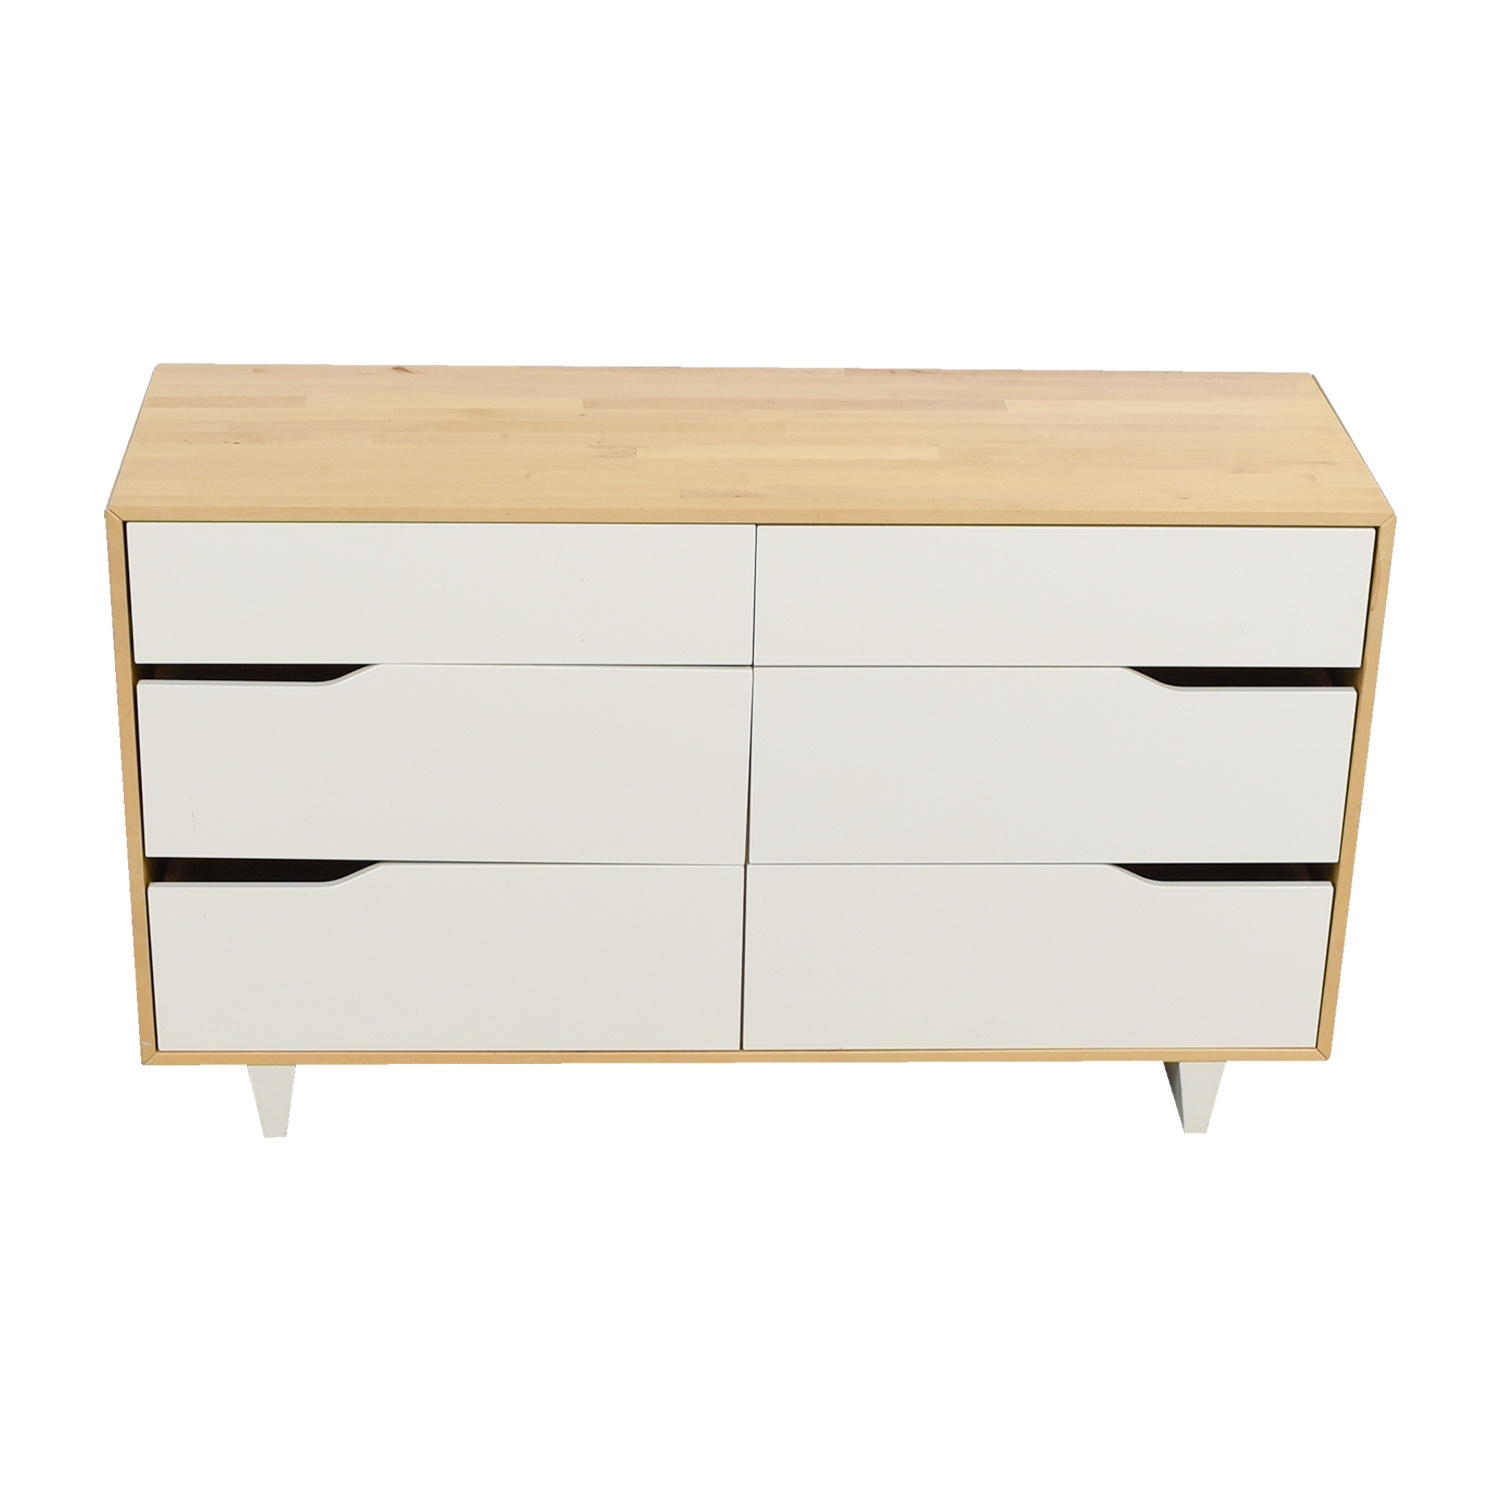 shop IKEA Askvoll White and Wood Six-Drawer Dresser IKEA Storage